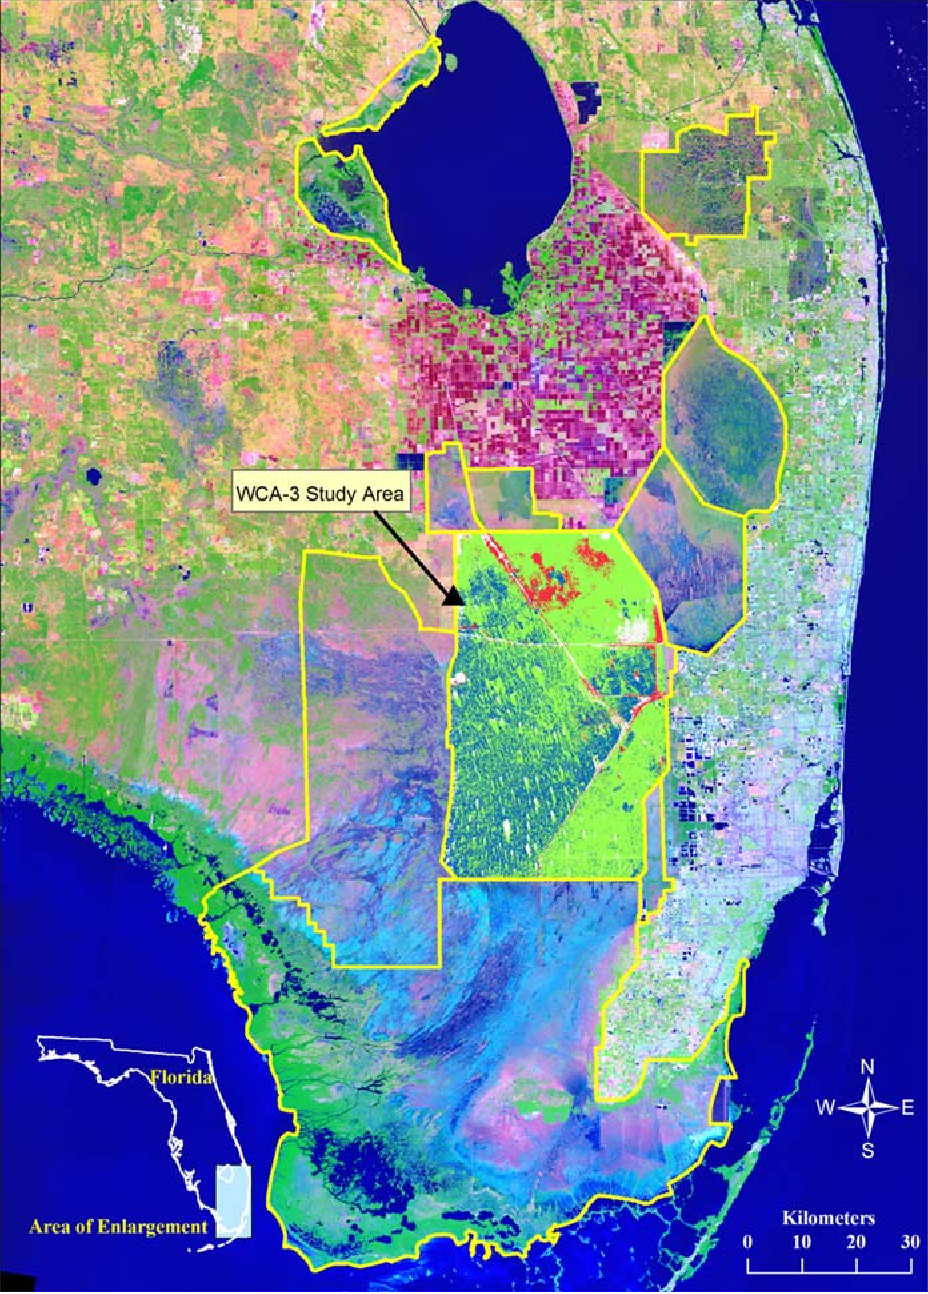 Determining an appropriate minimum mapping unit in vegetation